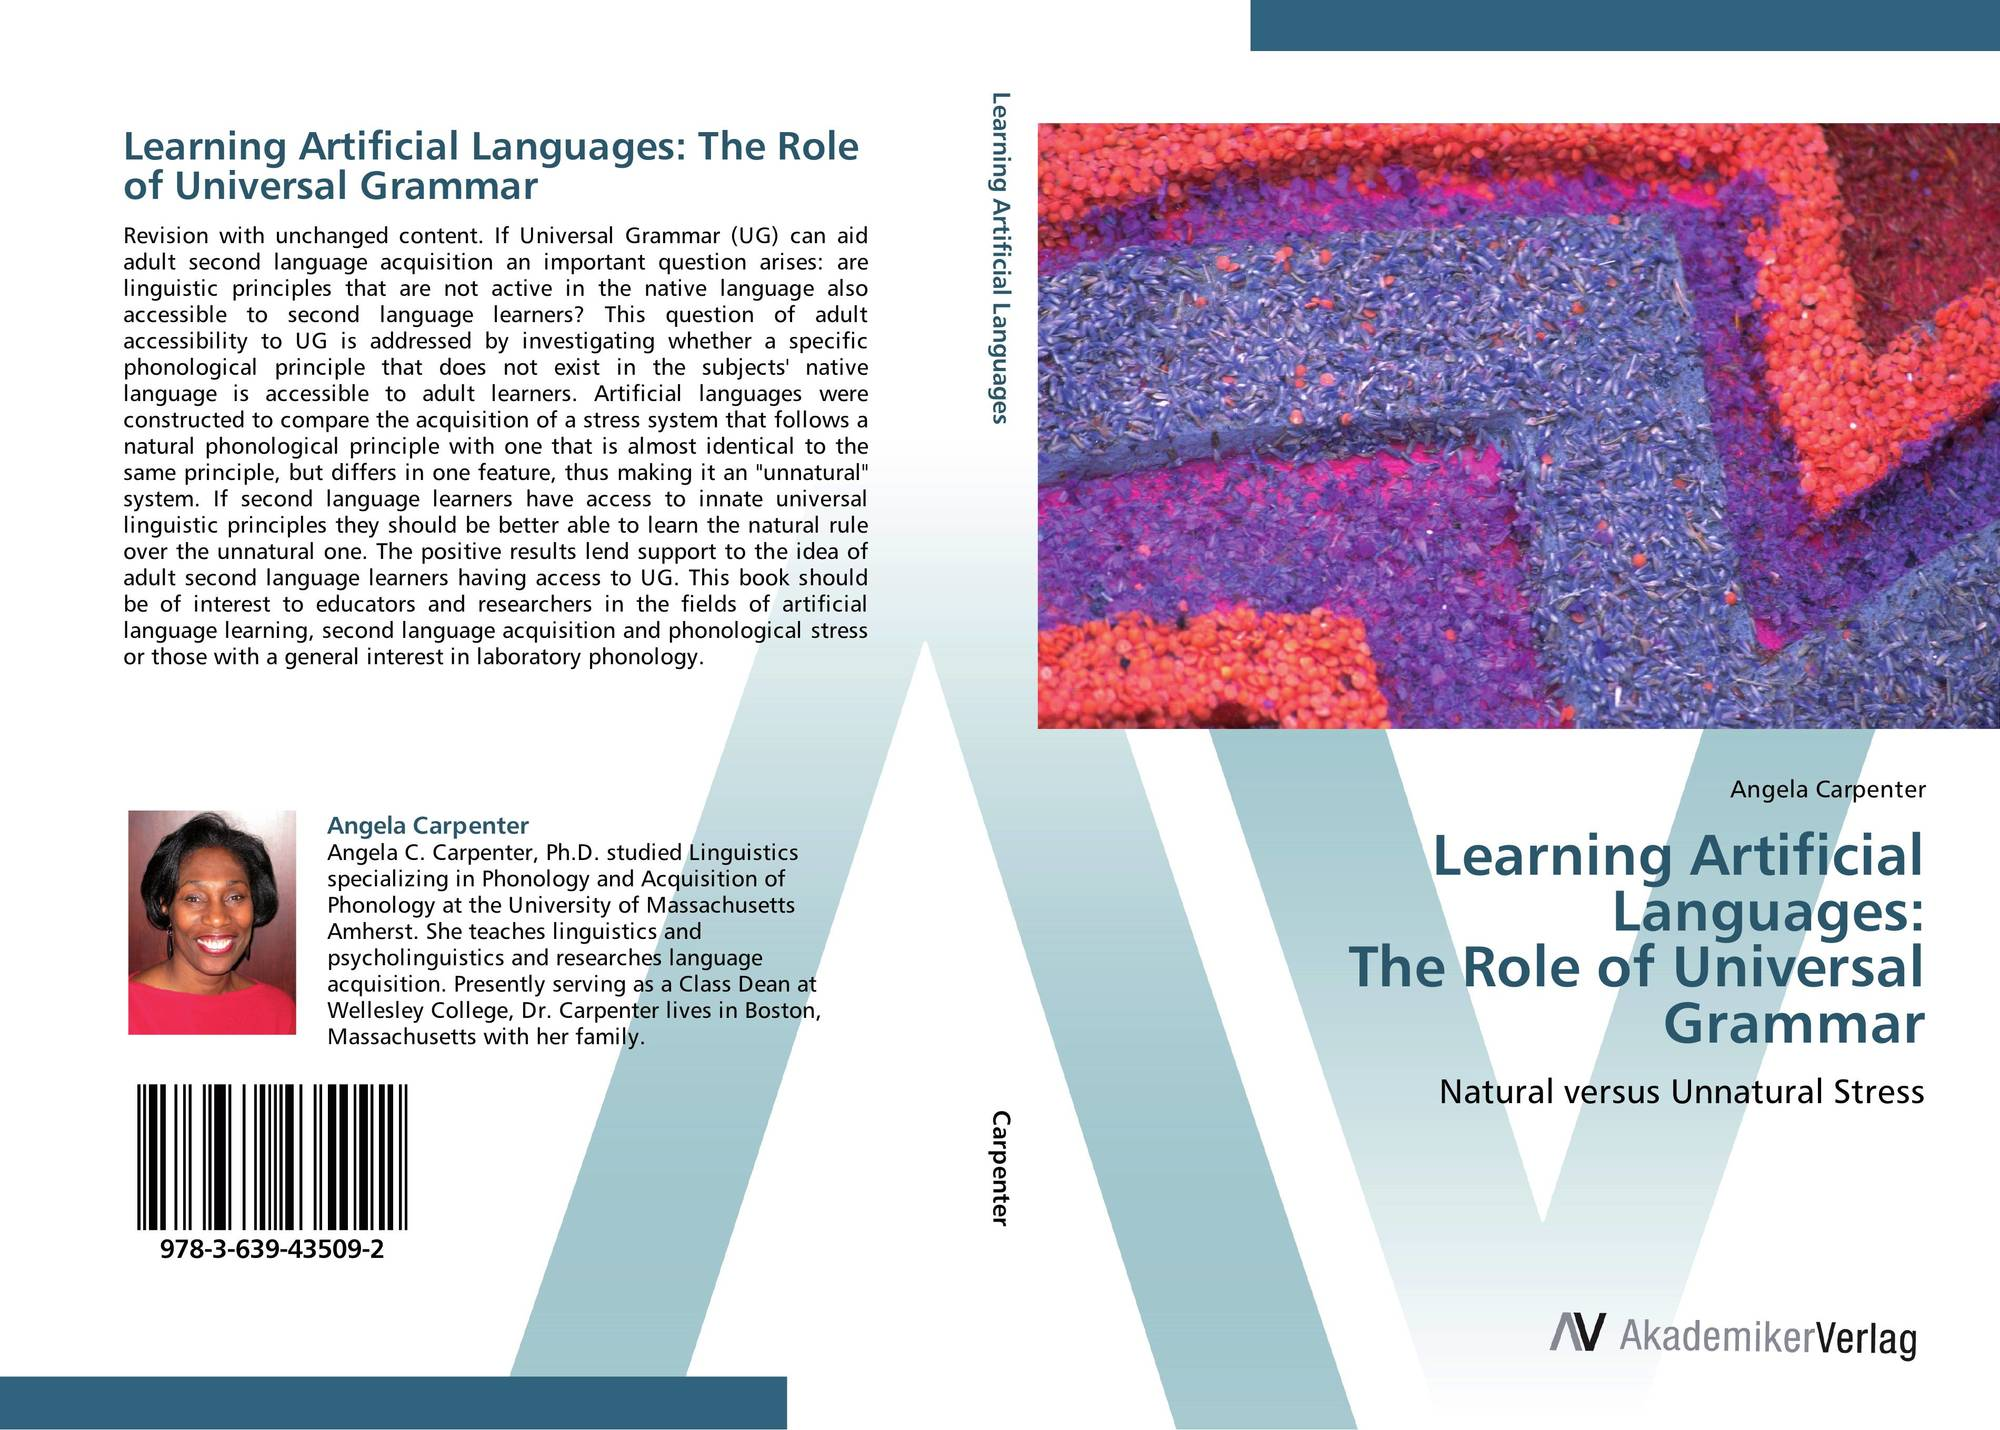 """the role of universal grammar in second language learning essay Keywords: universal grammar principles and parameters, second language  acquisition 1 introduction in linguistic field chomsky""""s theories on  language learning are widely discussed  the practical importance arises from  the assumption that an  therefore these will be illustrated in detail in this essay."""